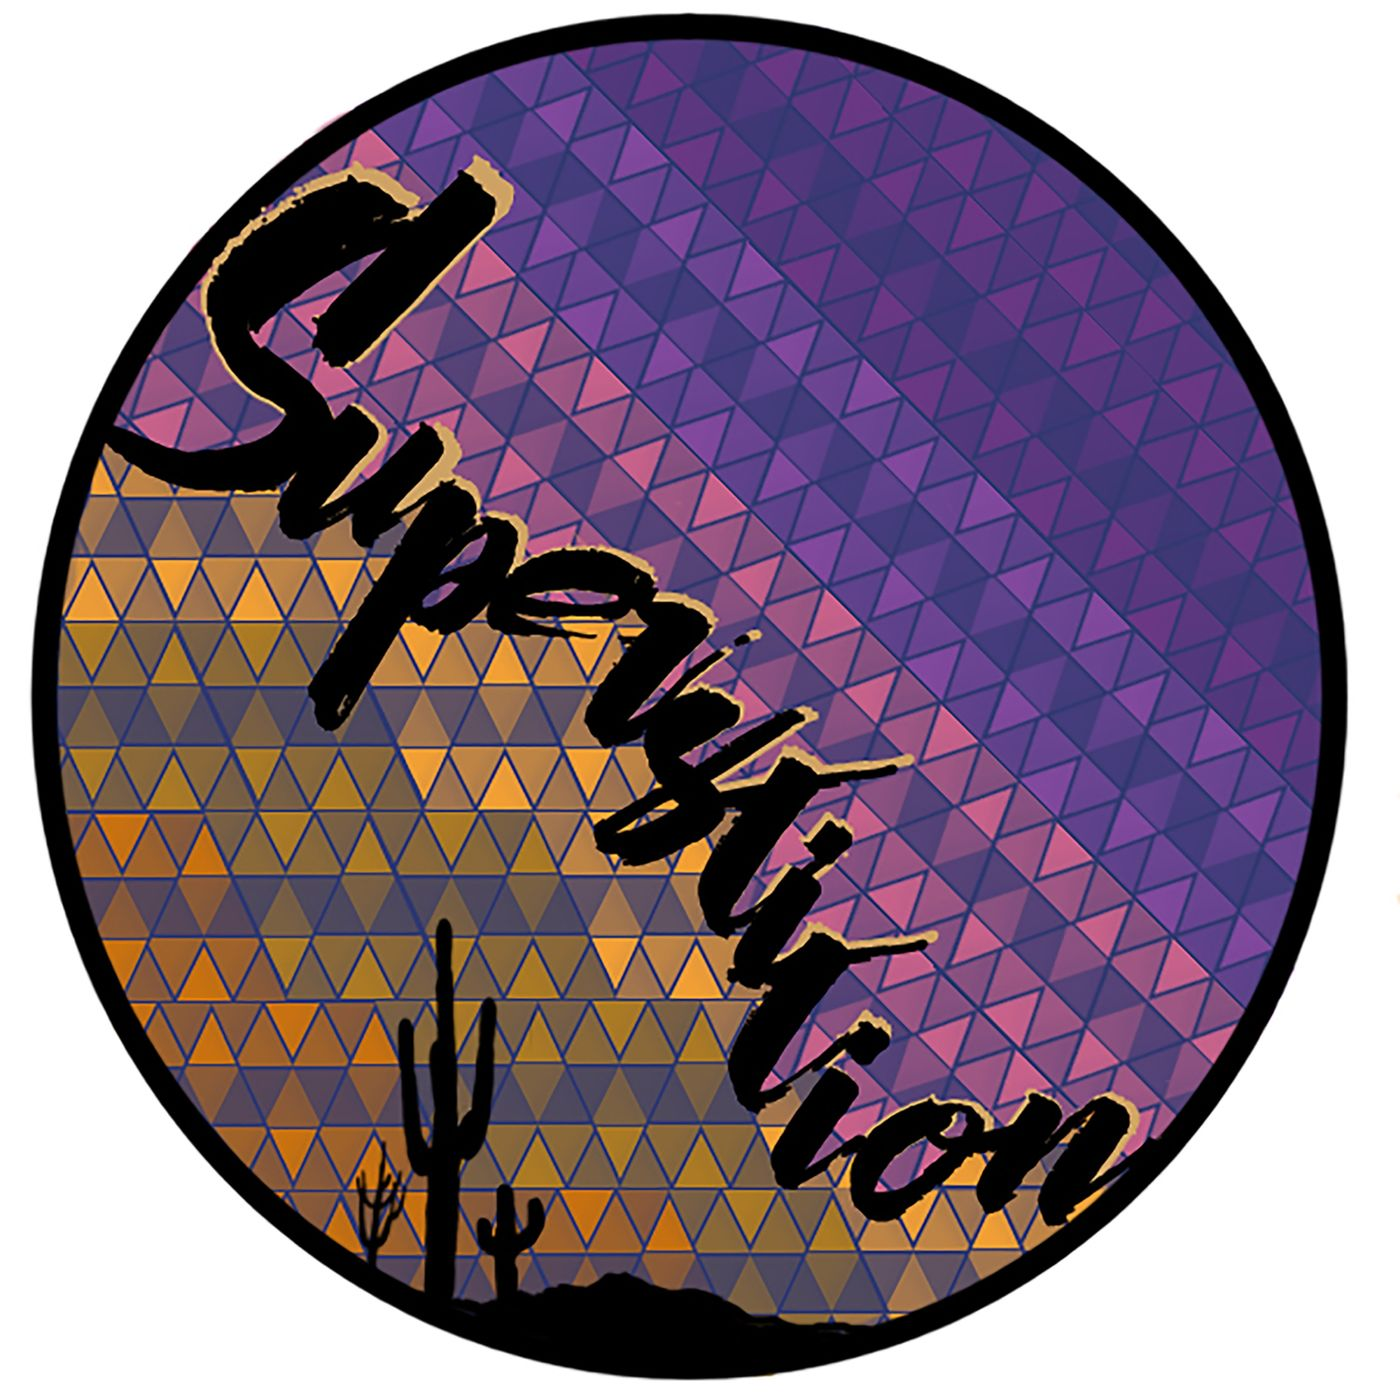 Superstition - Episode One - Welcome to Superstition